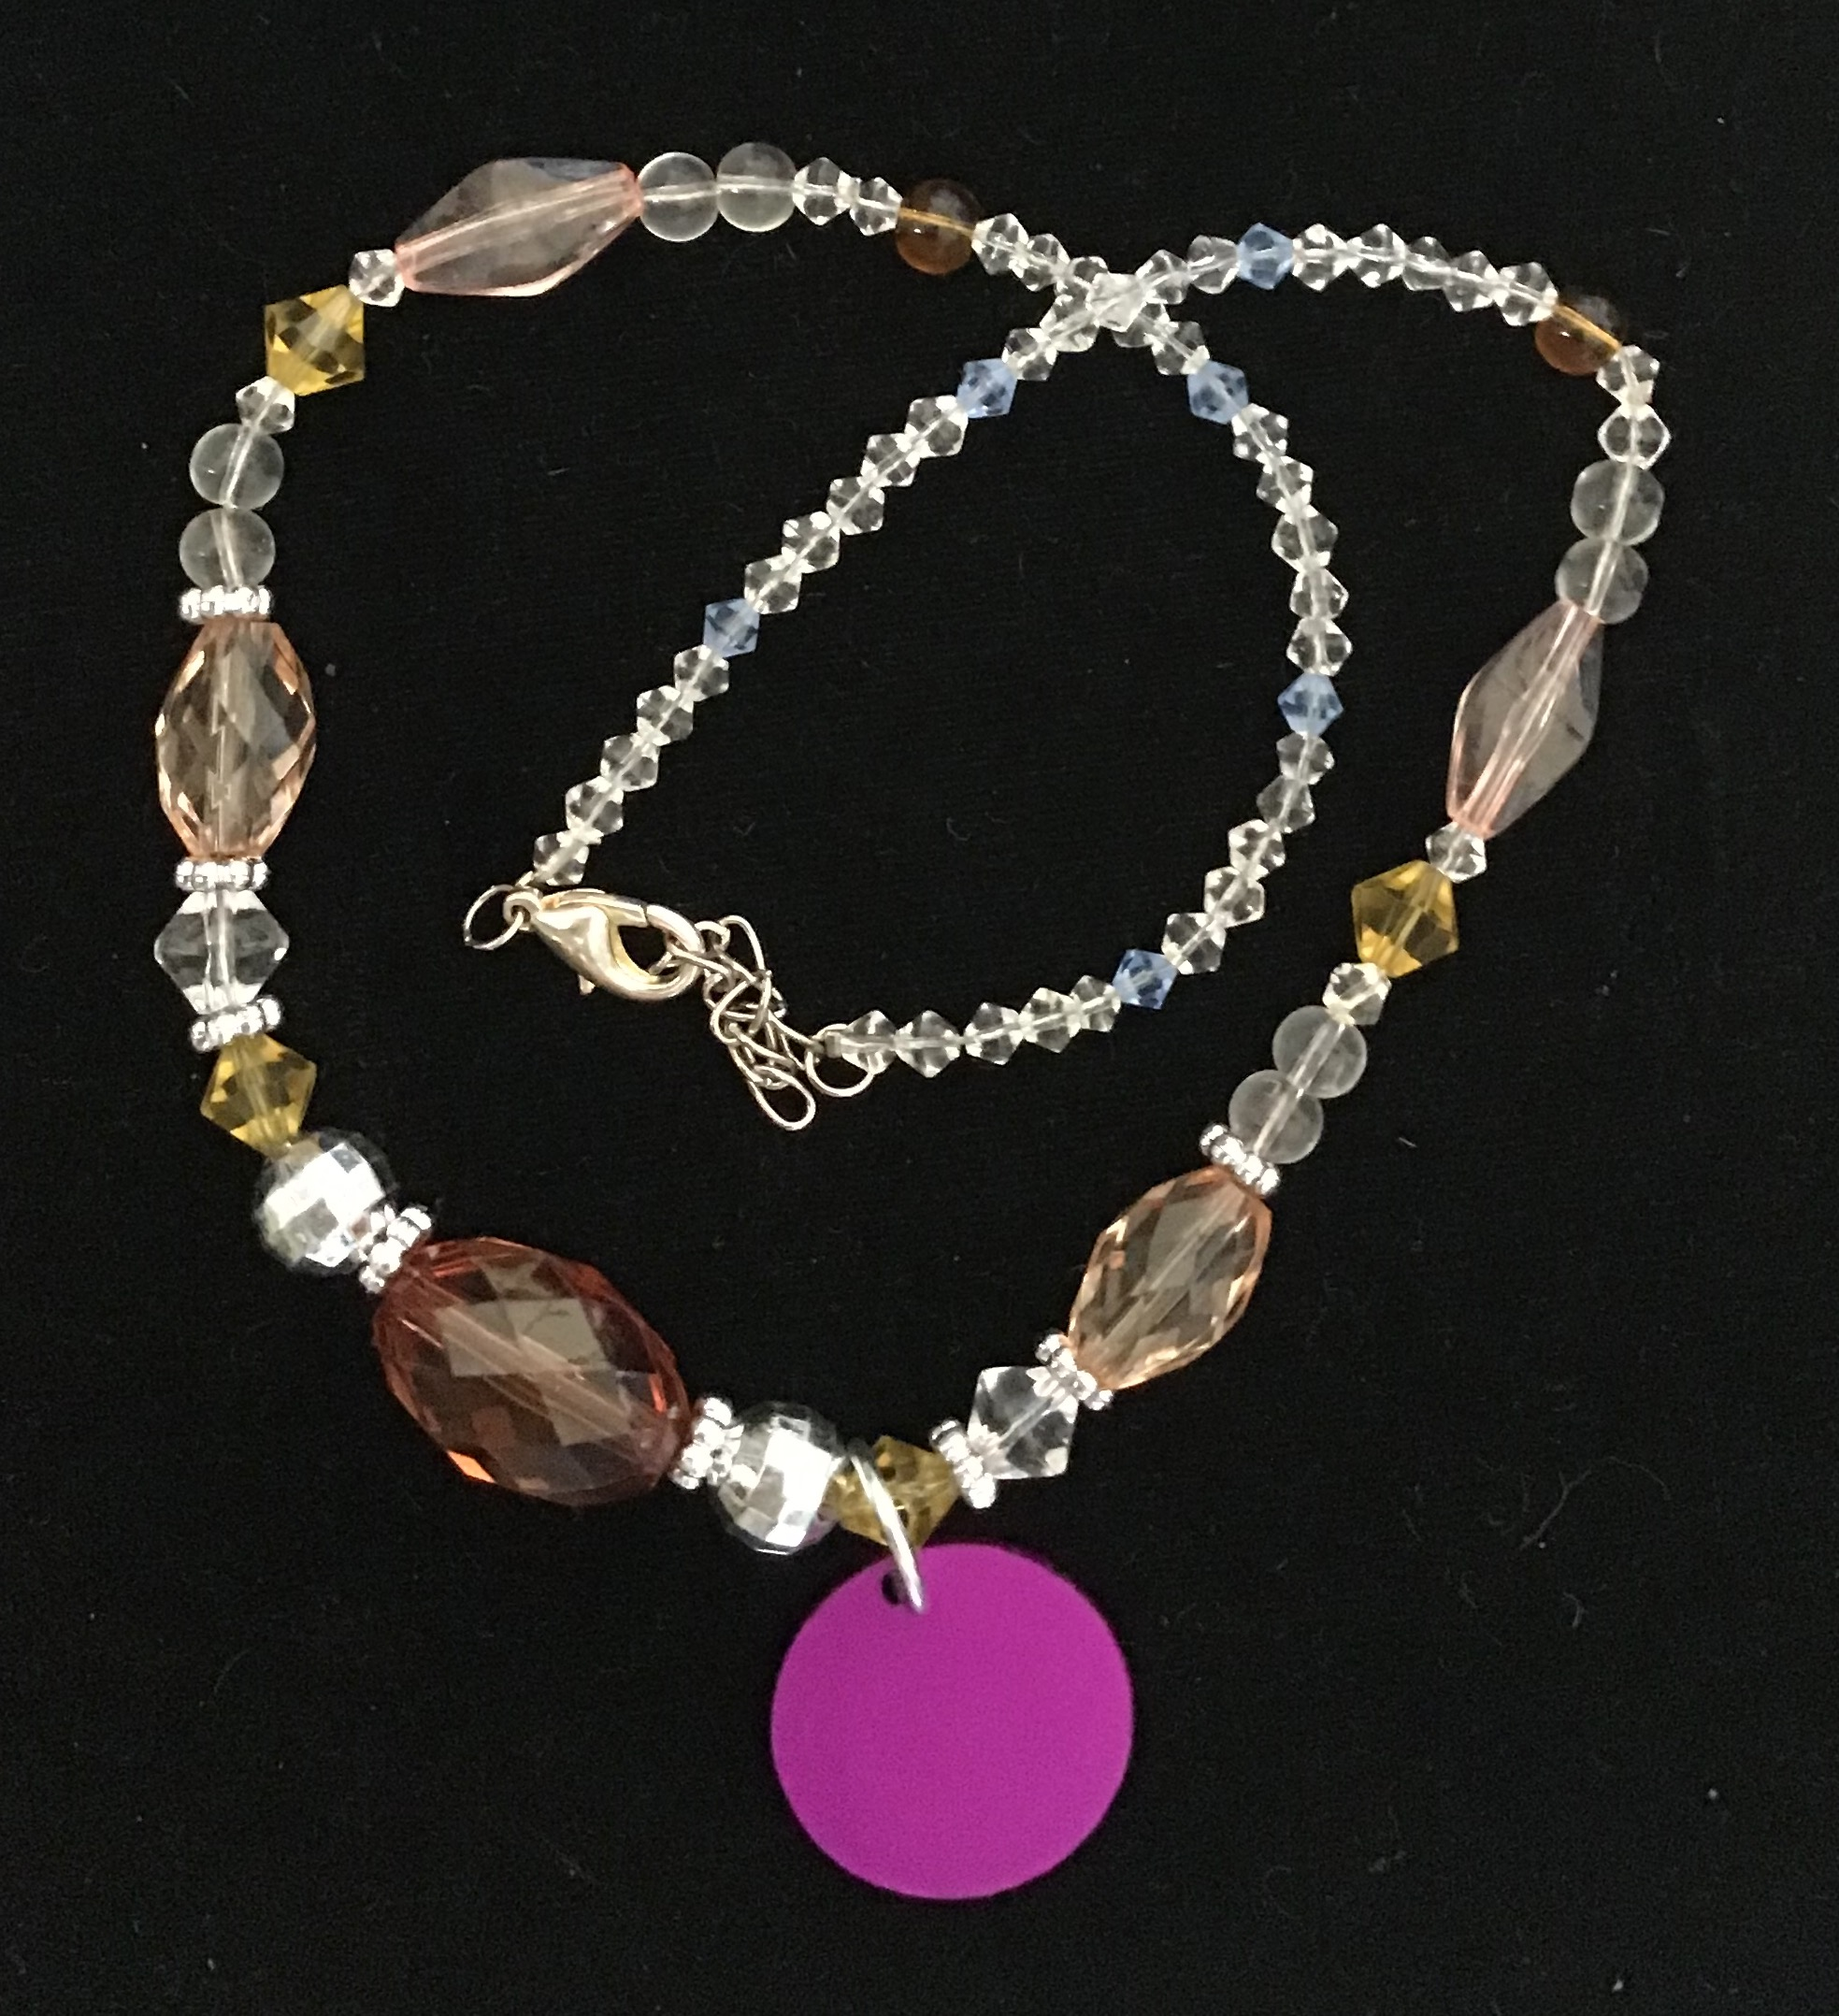 Crystal & Mix Bead Necklace w/Purple Energy Disk